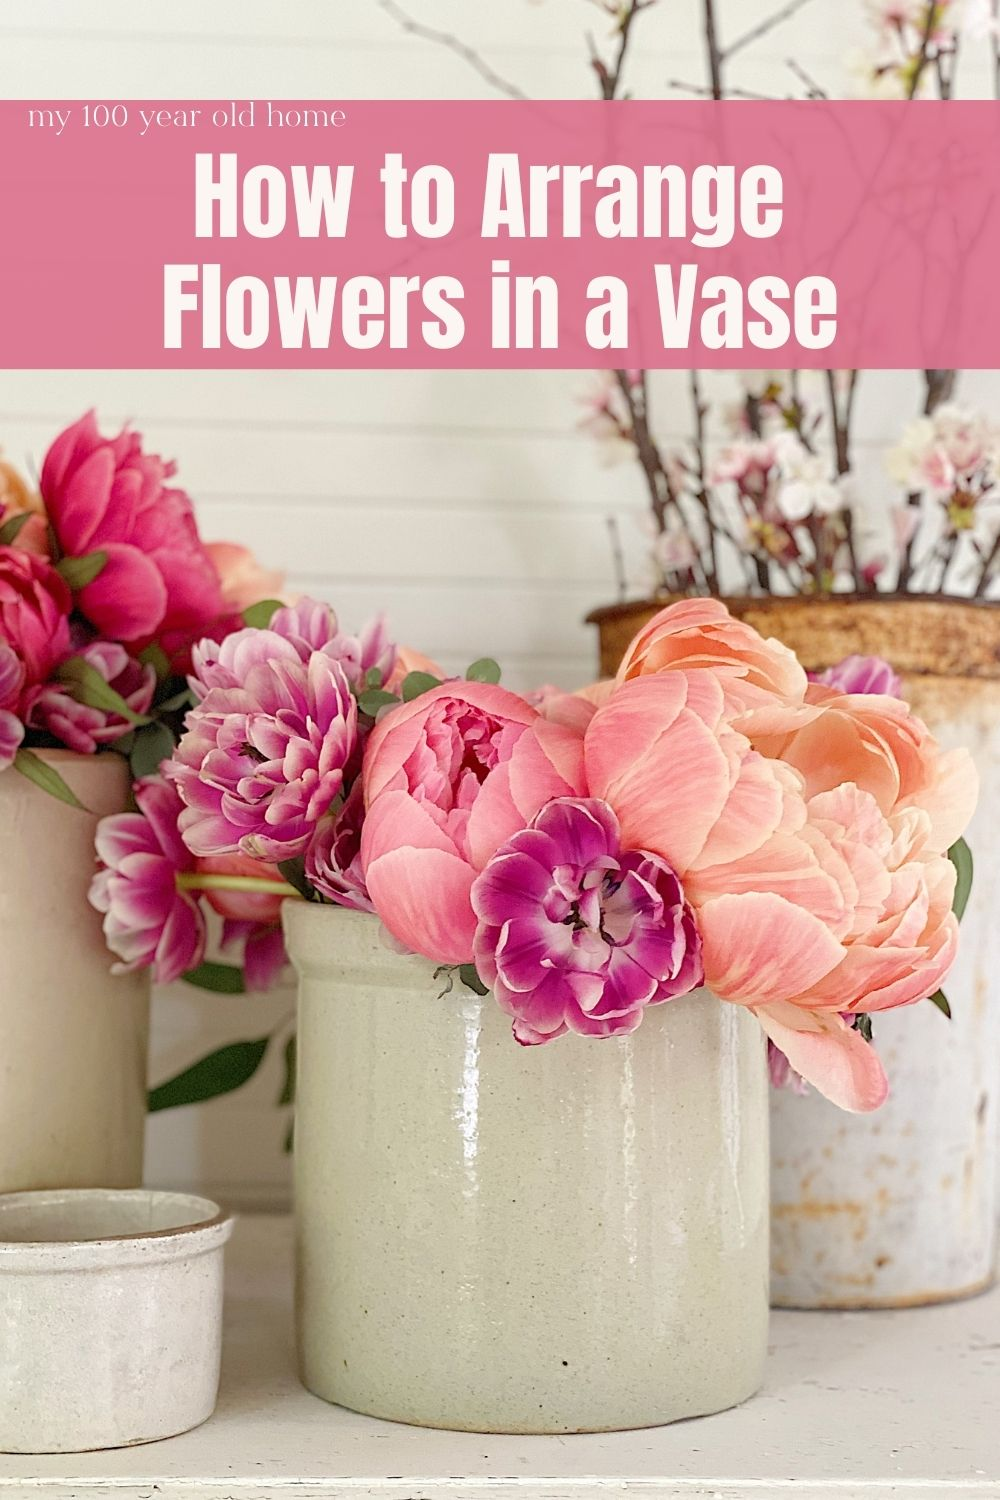 I love to arrange flowers and today I am sharing a foolproof and easy way to arrange flowers in a vase.